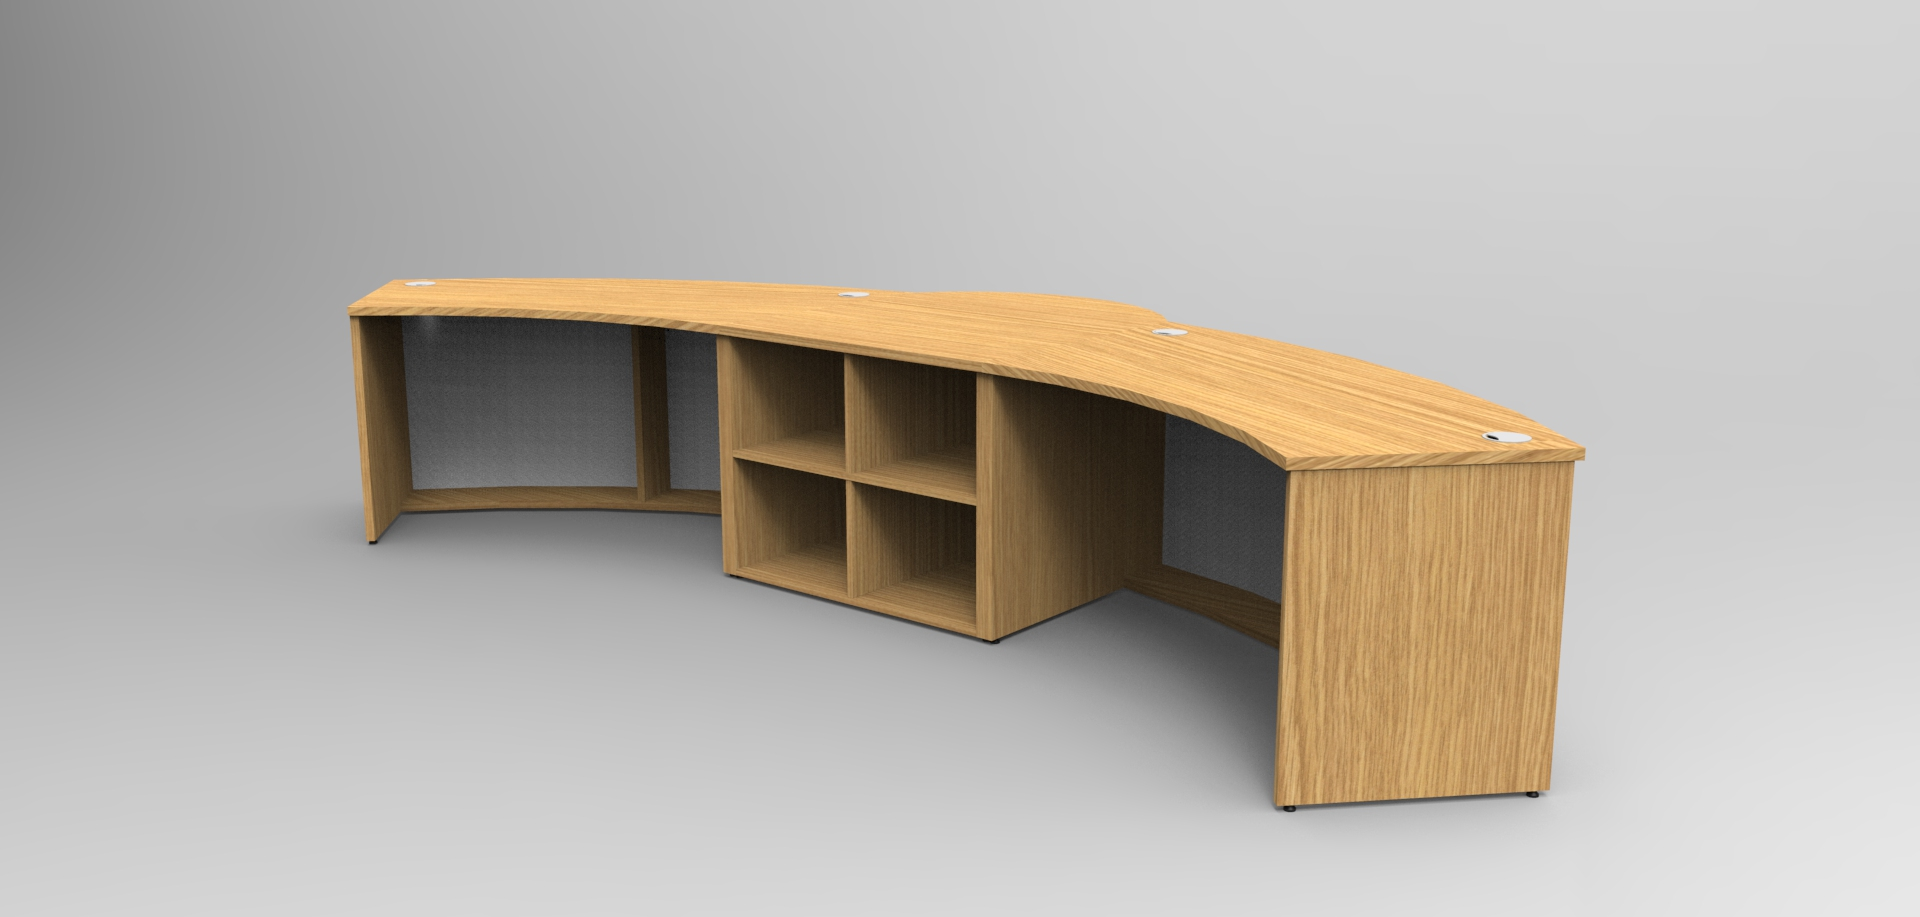 Render- Rear of an Aero reception desk showing cubby hole storage.